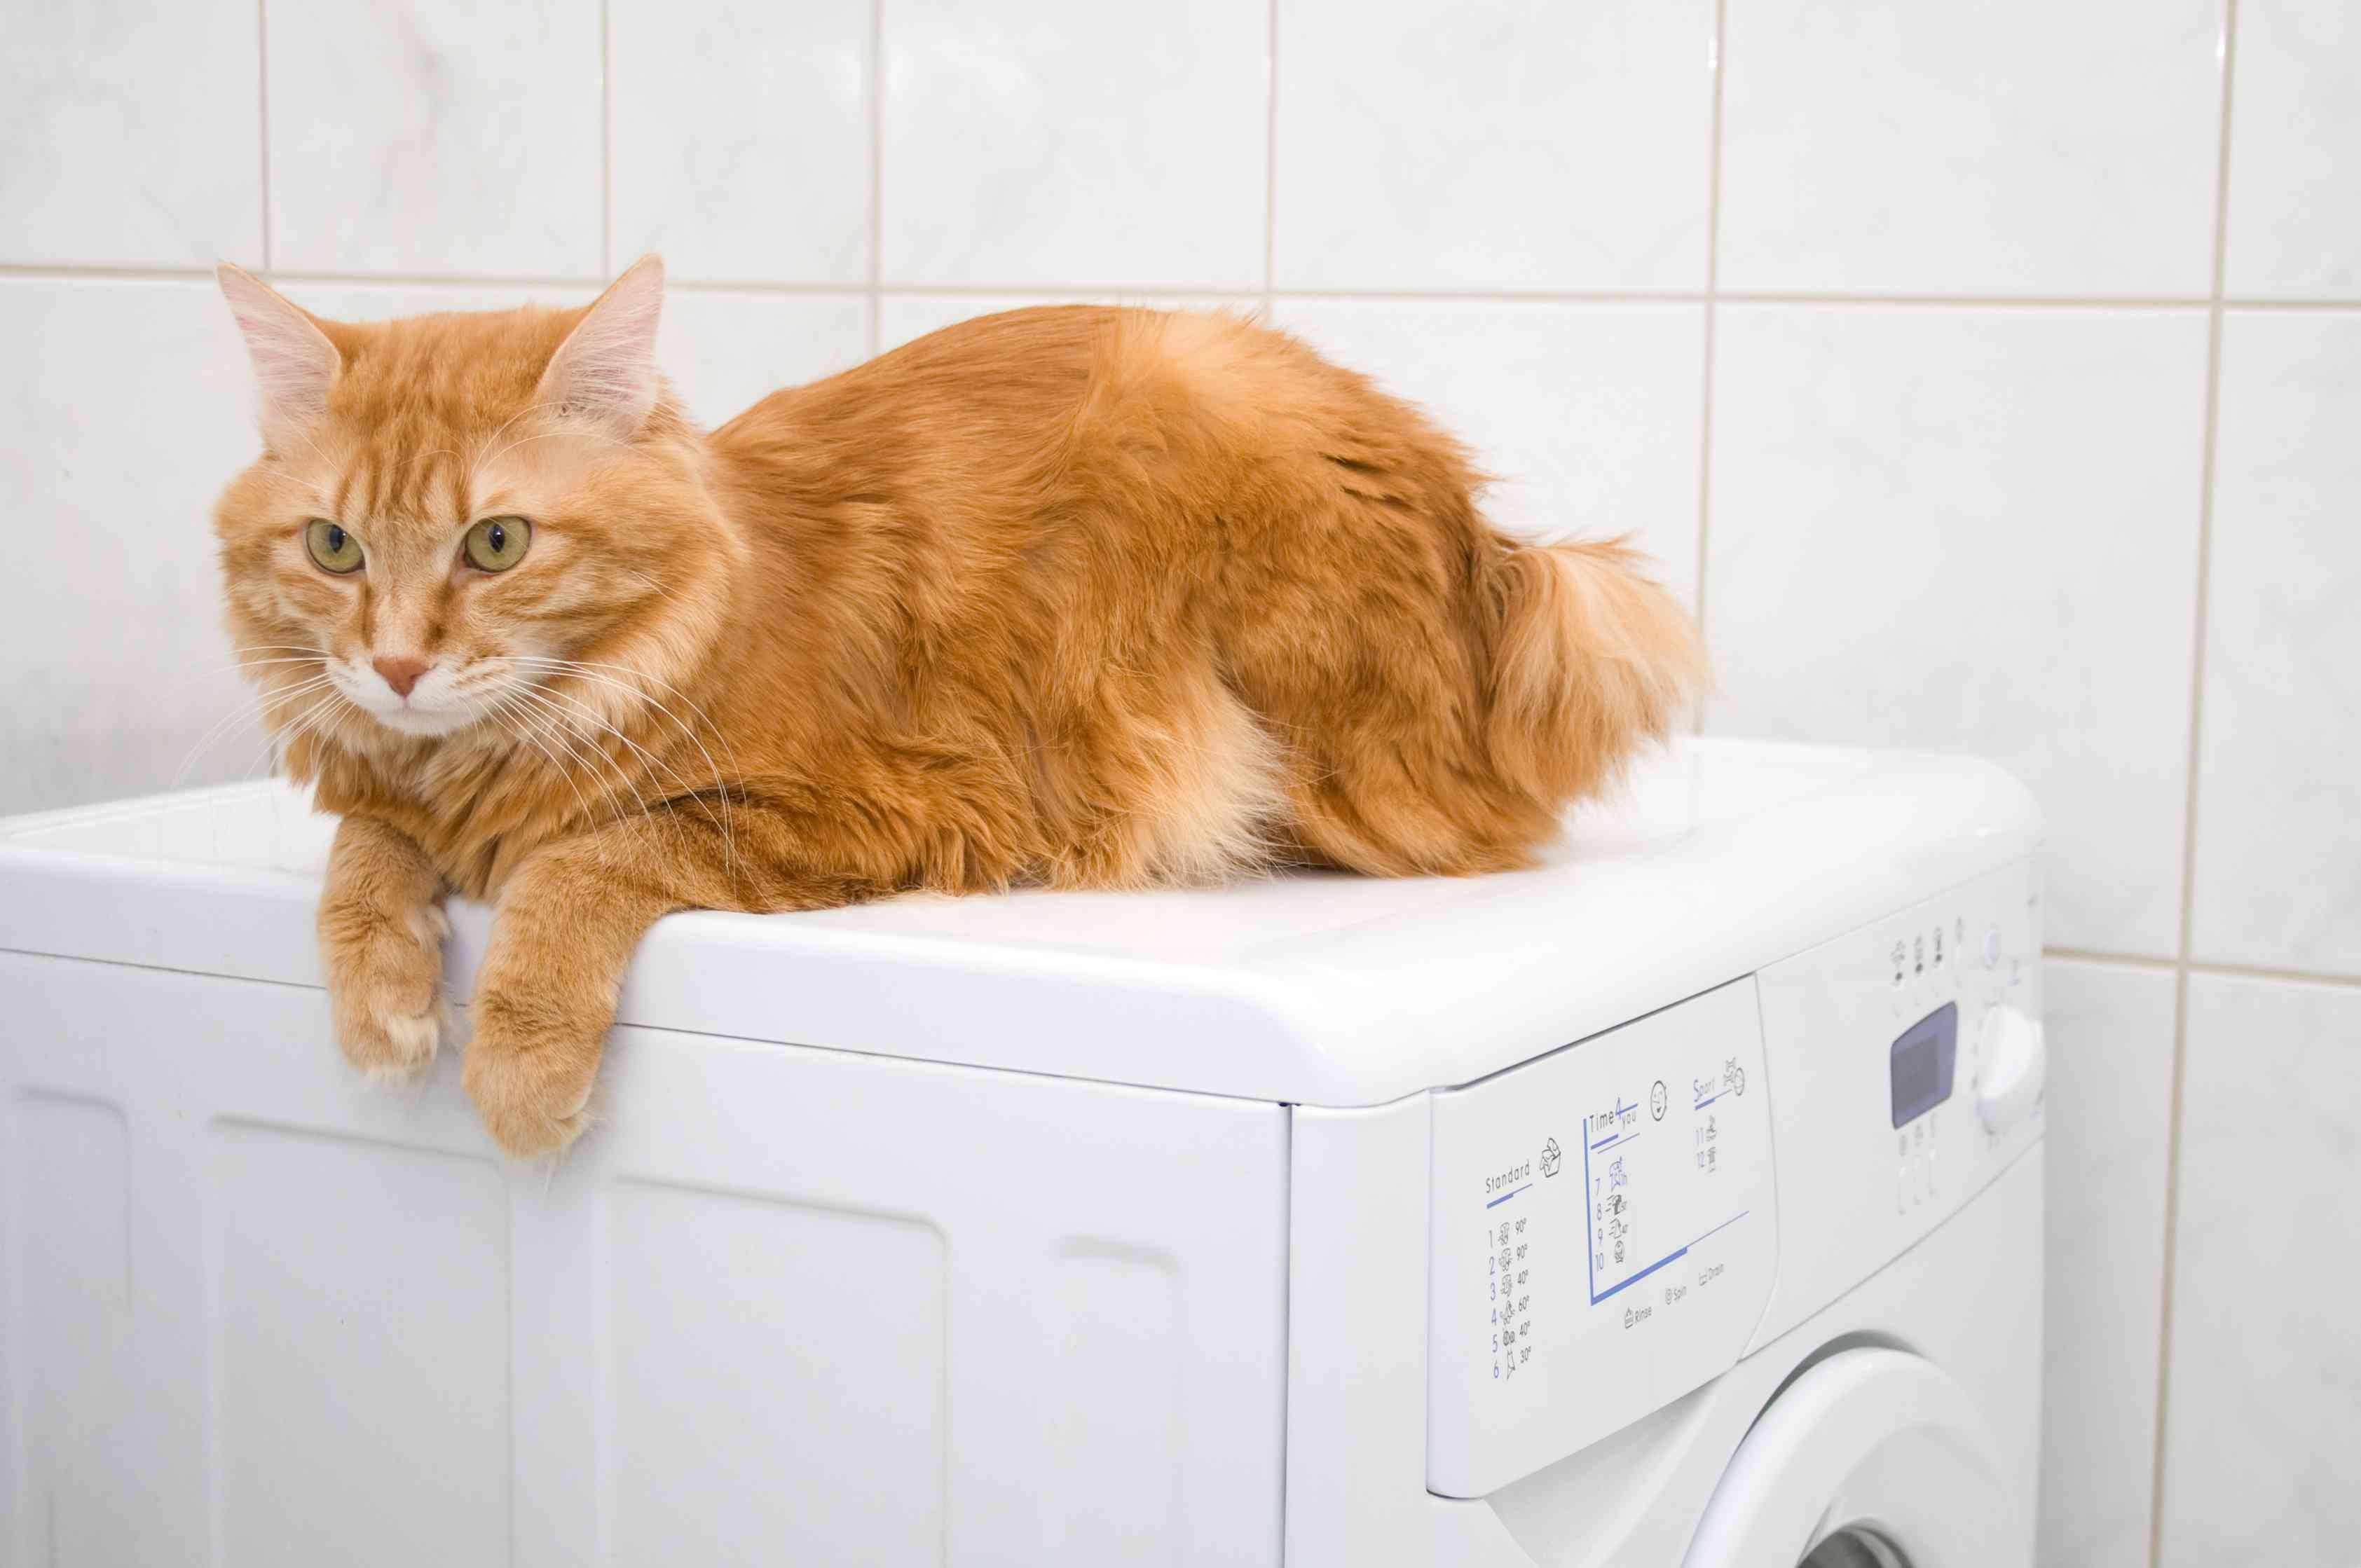 An orange cat with a short, bobbed tail laying on a washing machine.